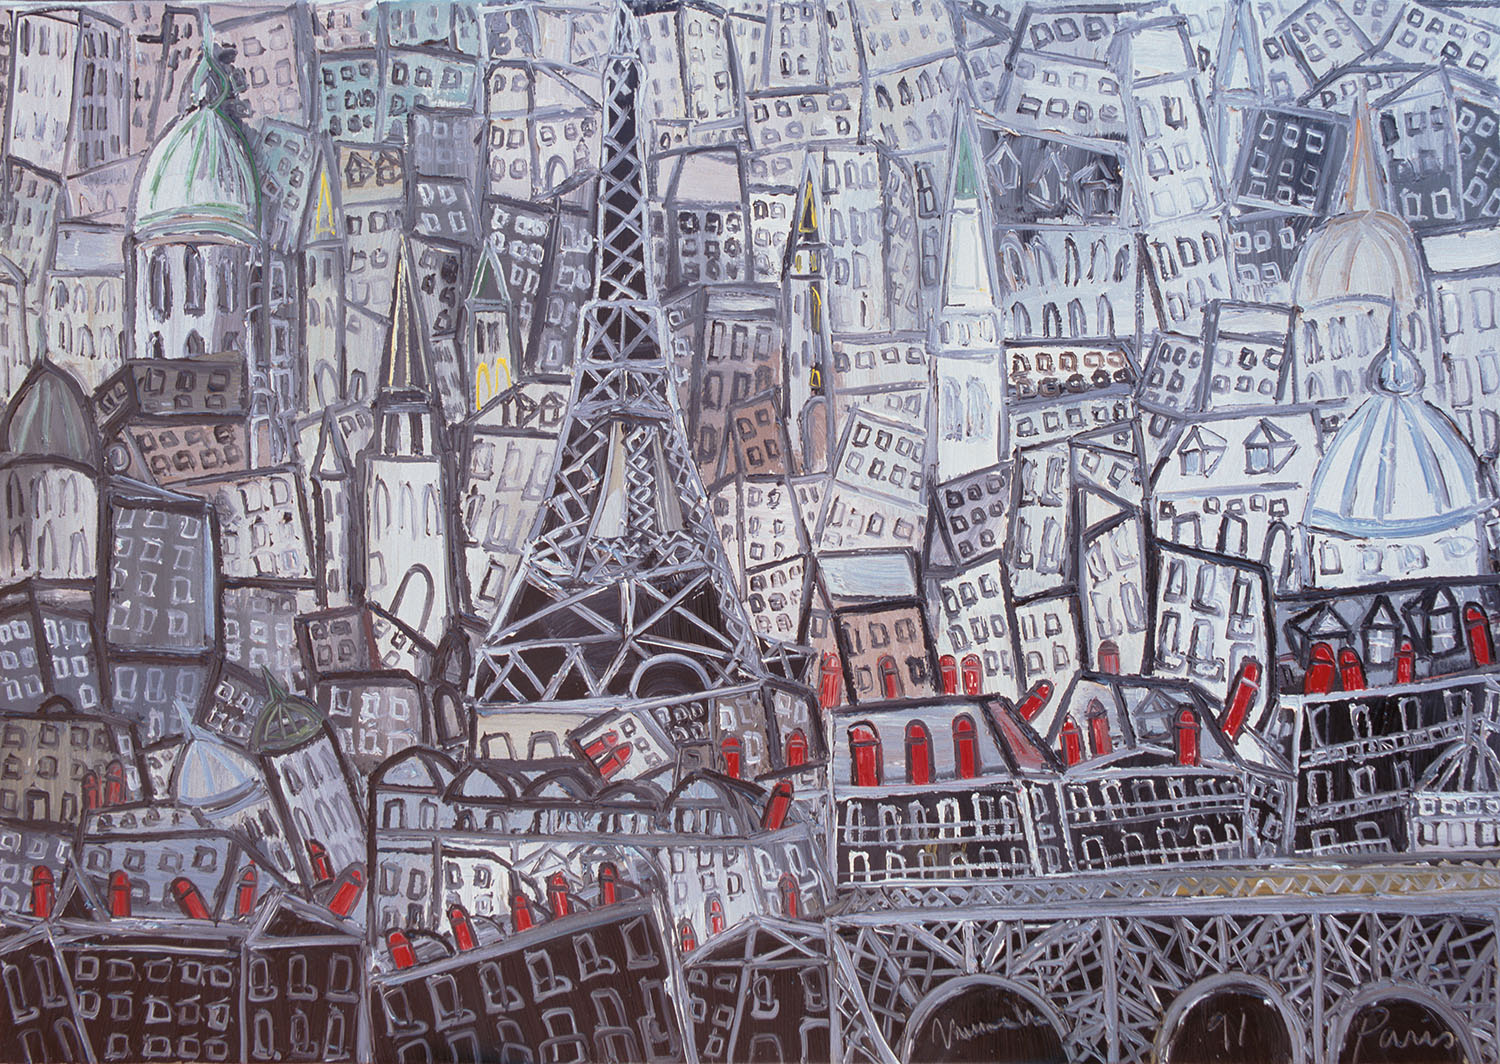 Paris, 1991, oil on canvas, cm 65 x 92